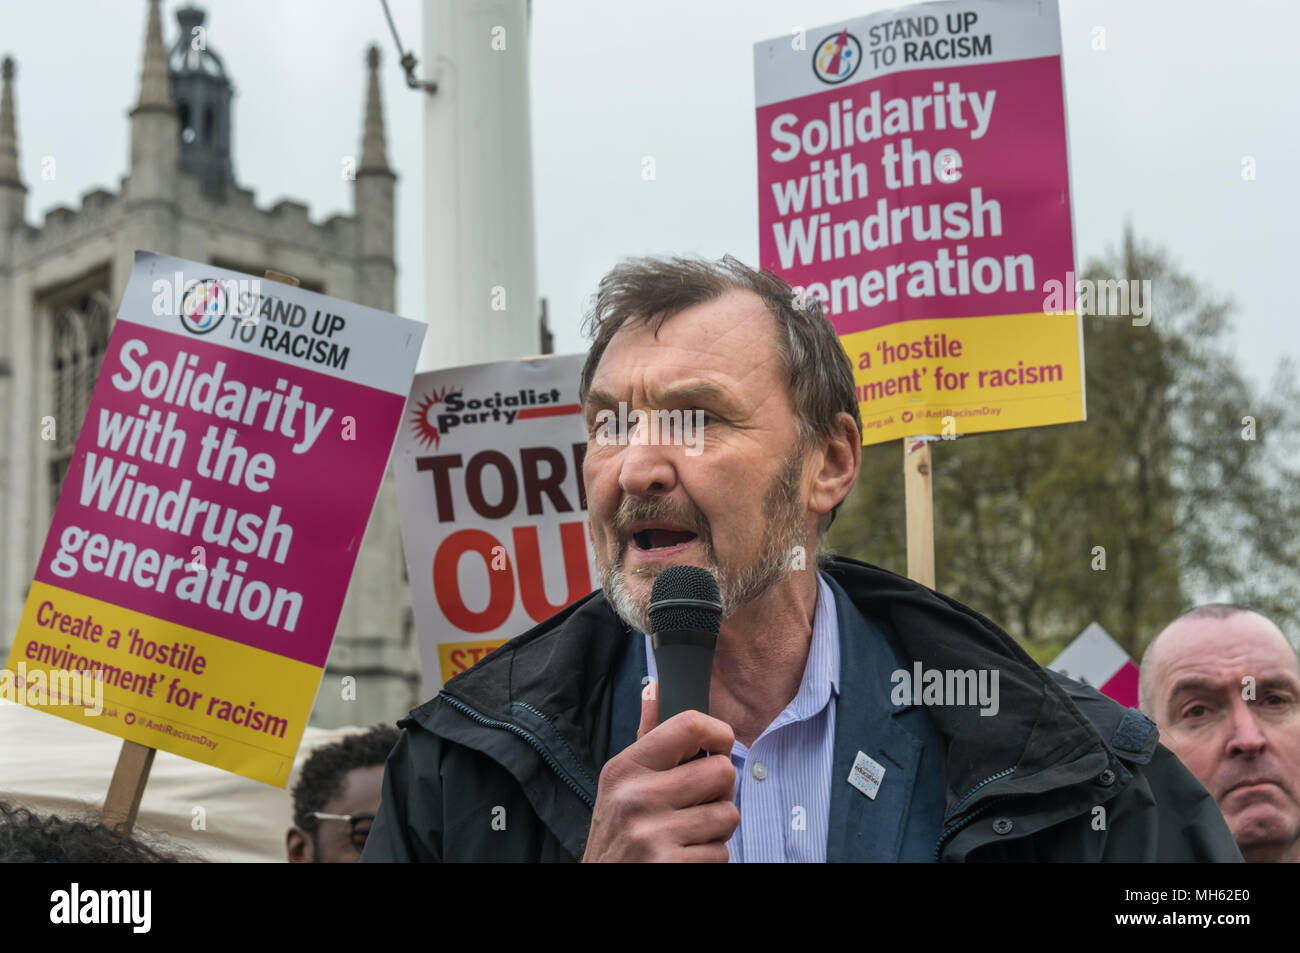 London, UK. 30th April 2018.  NEU General Secretary Kevin Courtney speaks at the protest in support of the petition calling for an end to the deportations of migrants in the 'Windrush generation' who arrived in Britain between 1948 and 1971. It calls on the government to change the burden of proof which means they are now required to prove their right to remain, and to provide compensation for any loss and hurt.. re for many years, paying taxes and raising families he Credit: Peter Marshall/Alamy Live News - Stock Image